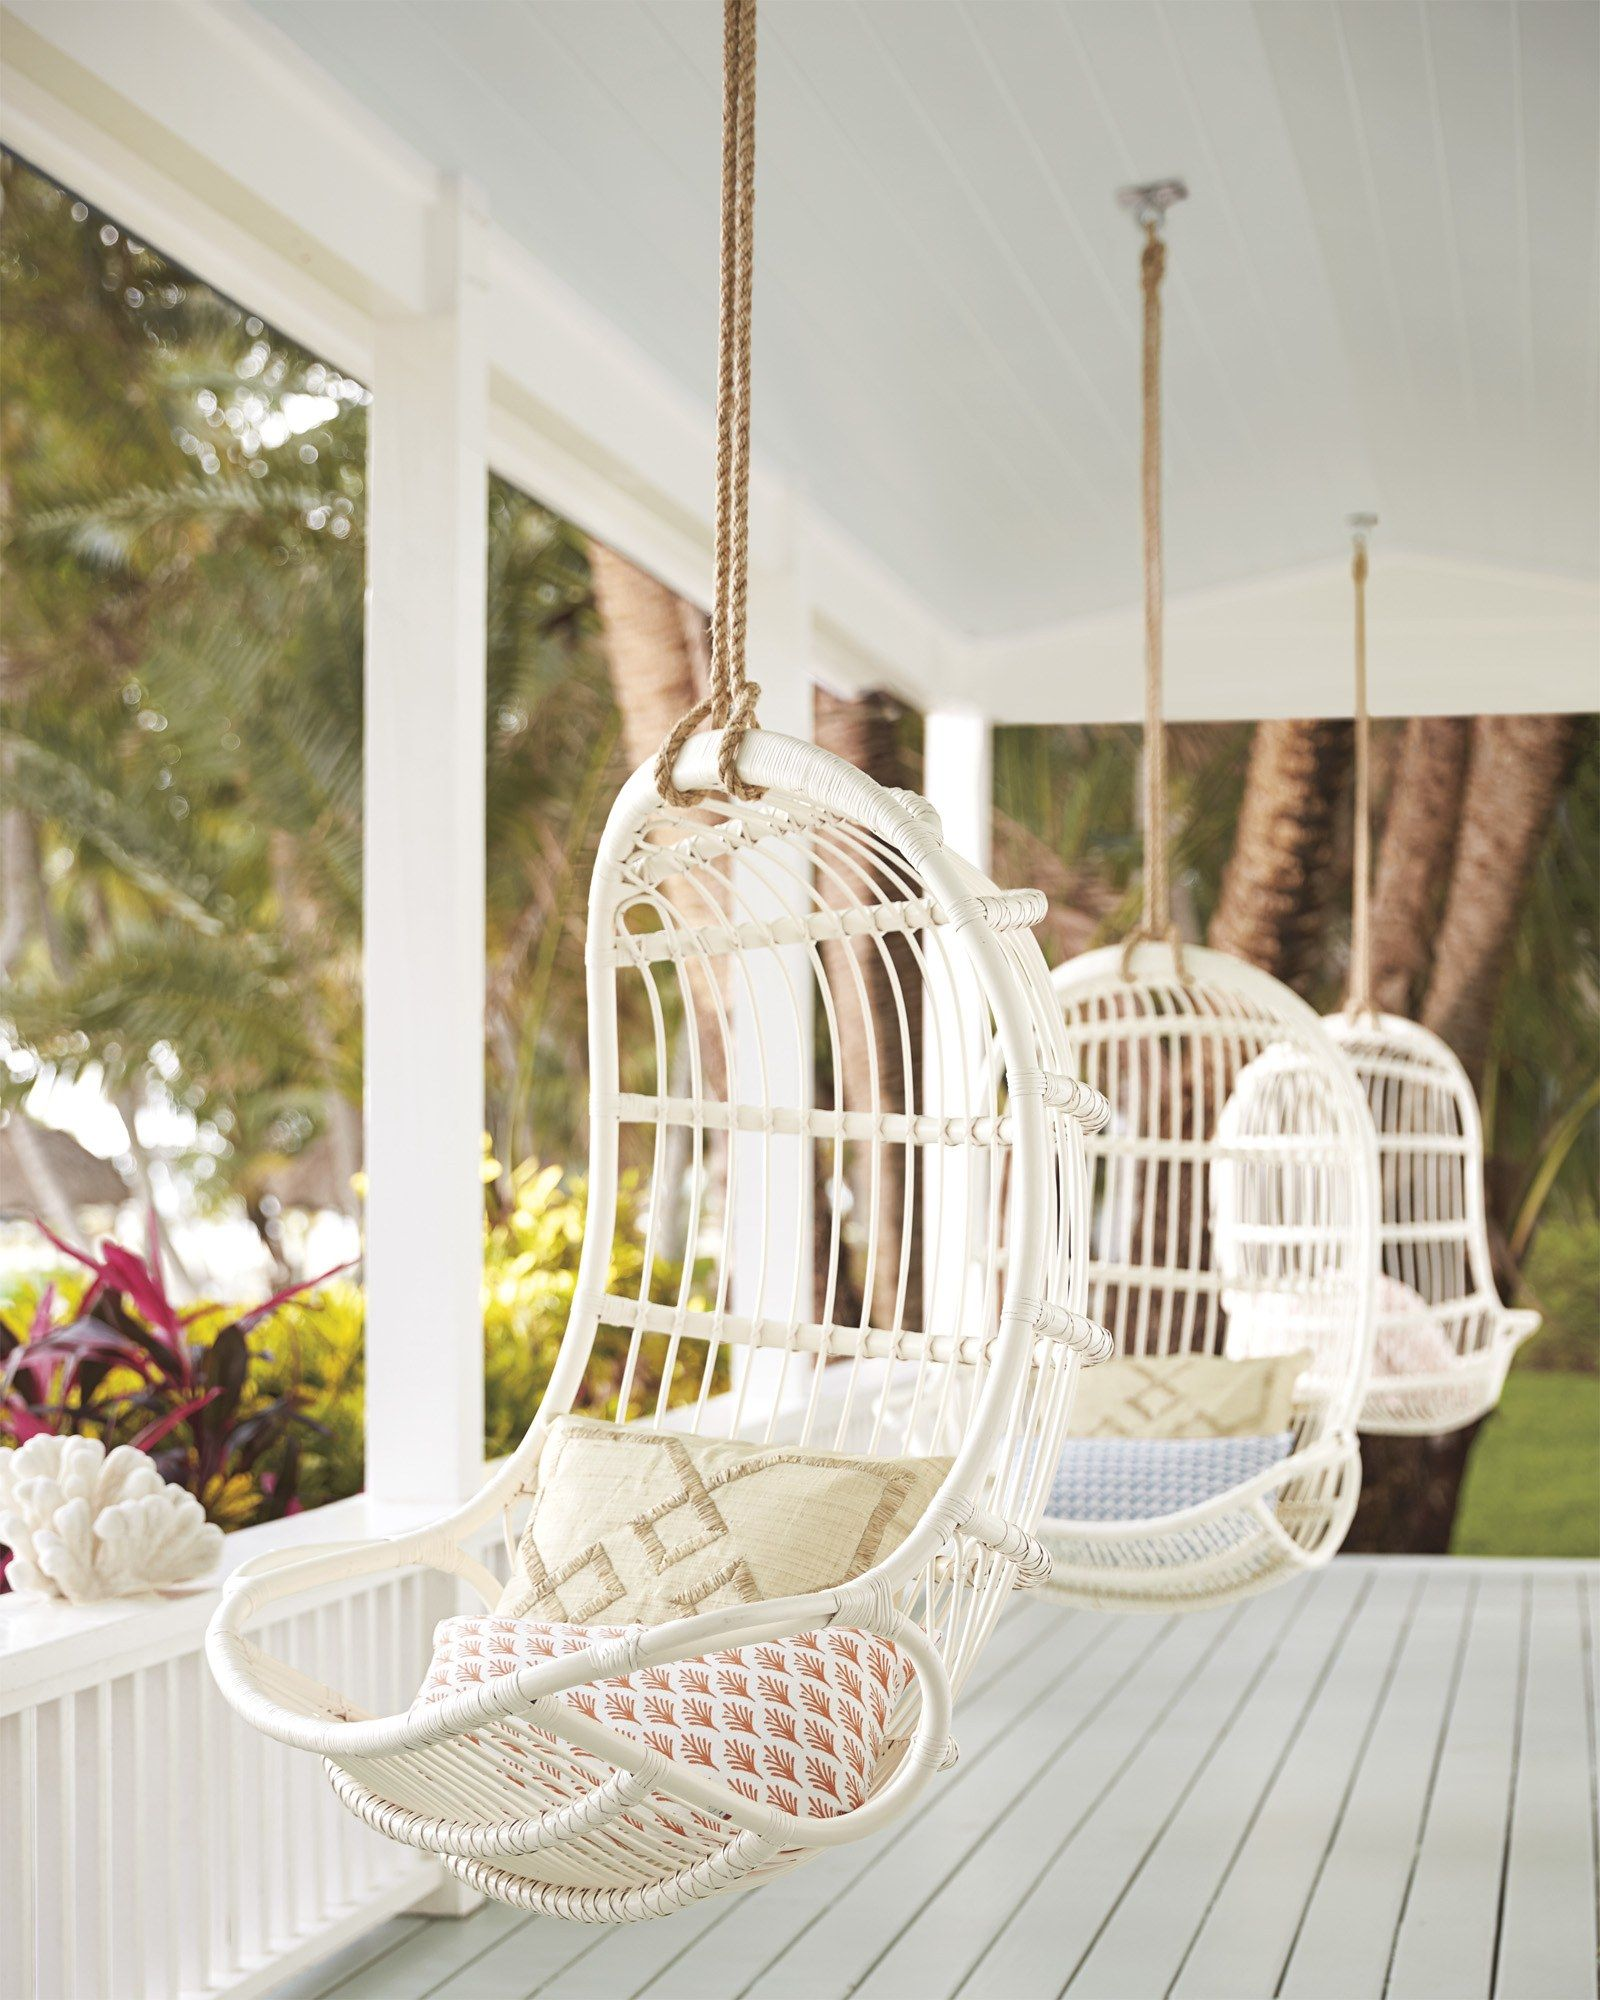 11 Hanging Chairs You Ll Never Want To Get Out Of Hangstoel